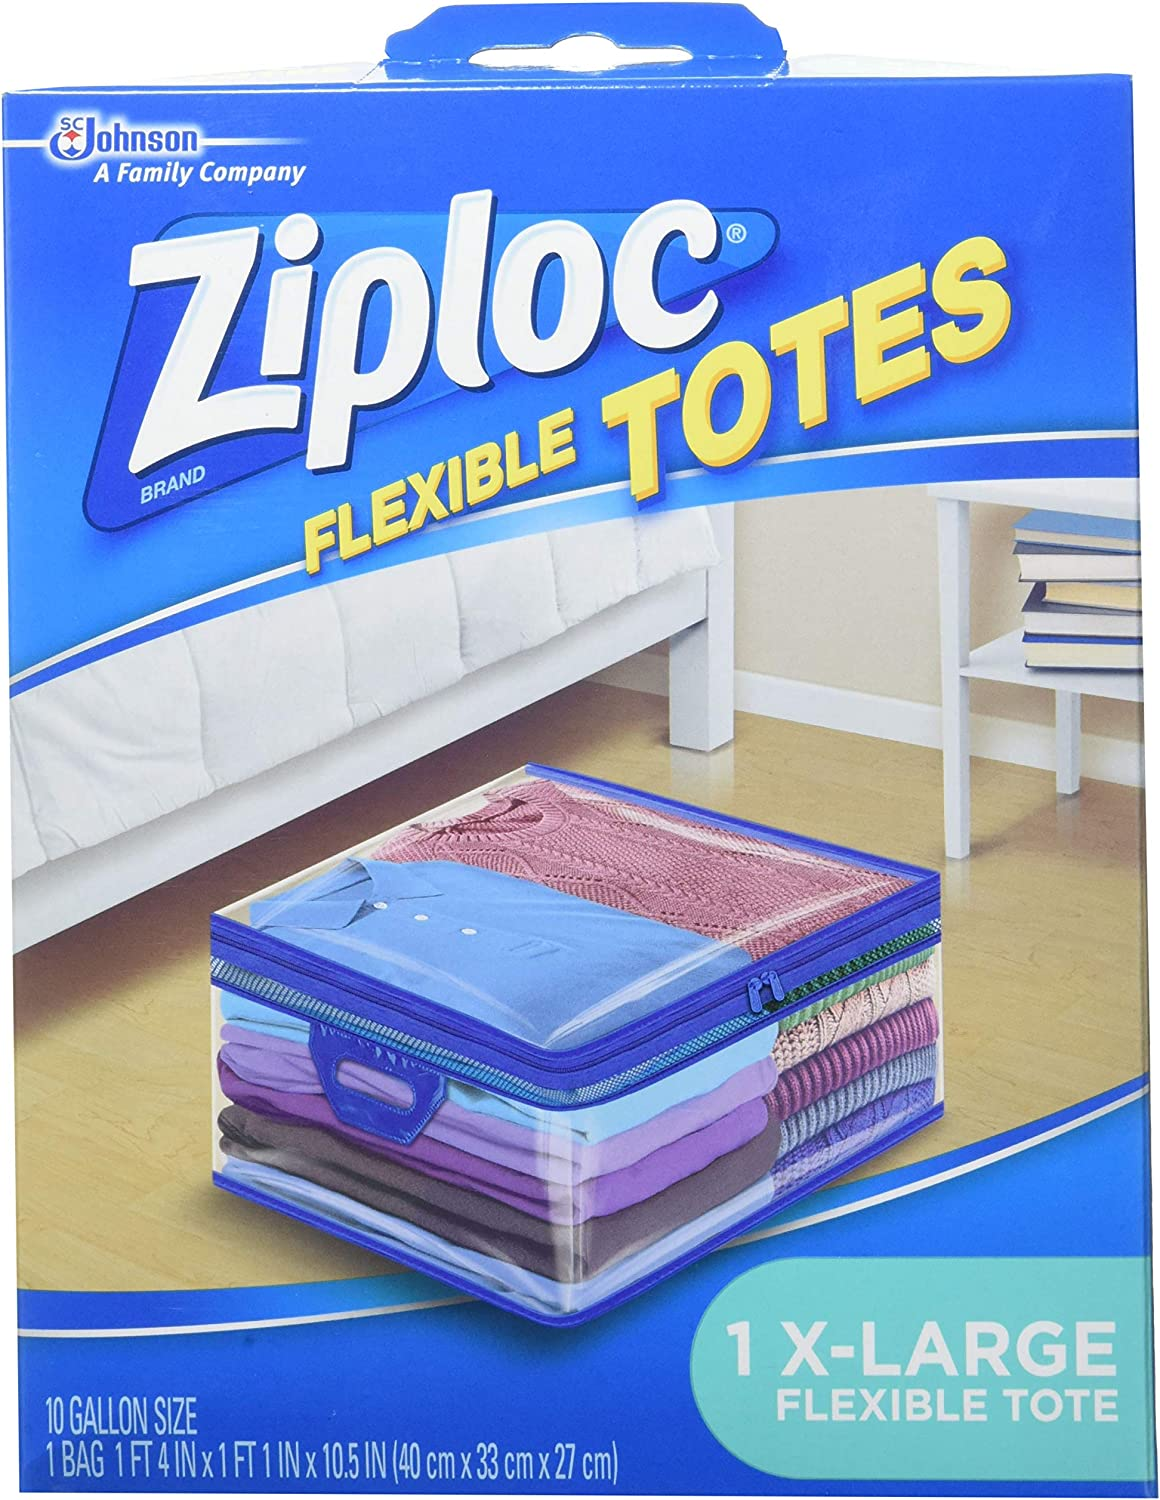 Ziploc Storage Bags for Clothes, Flexible Totes for Easy and Convenient Storage, 1 XL Bag, Pack of 4 (4 Total Bags): Health & Personal Care